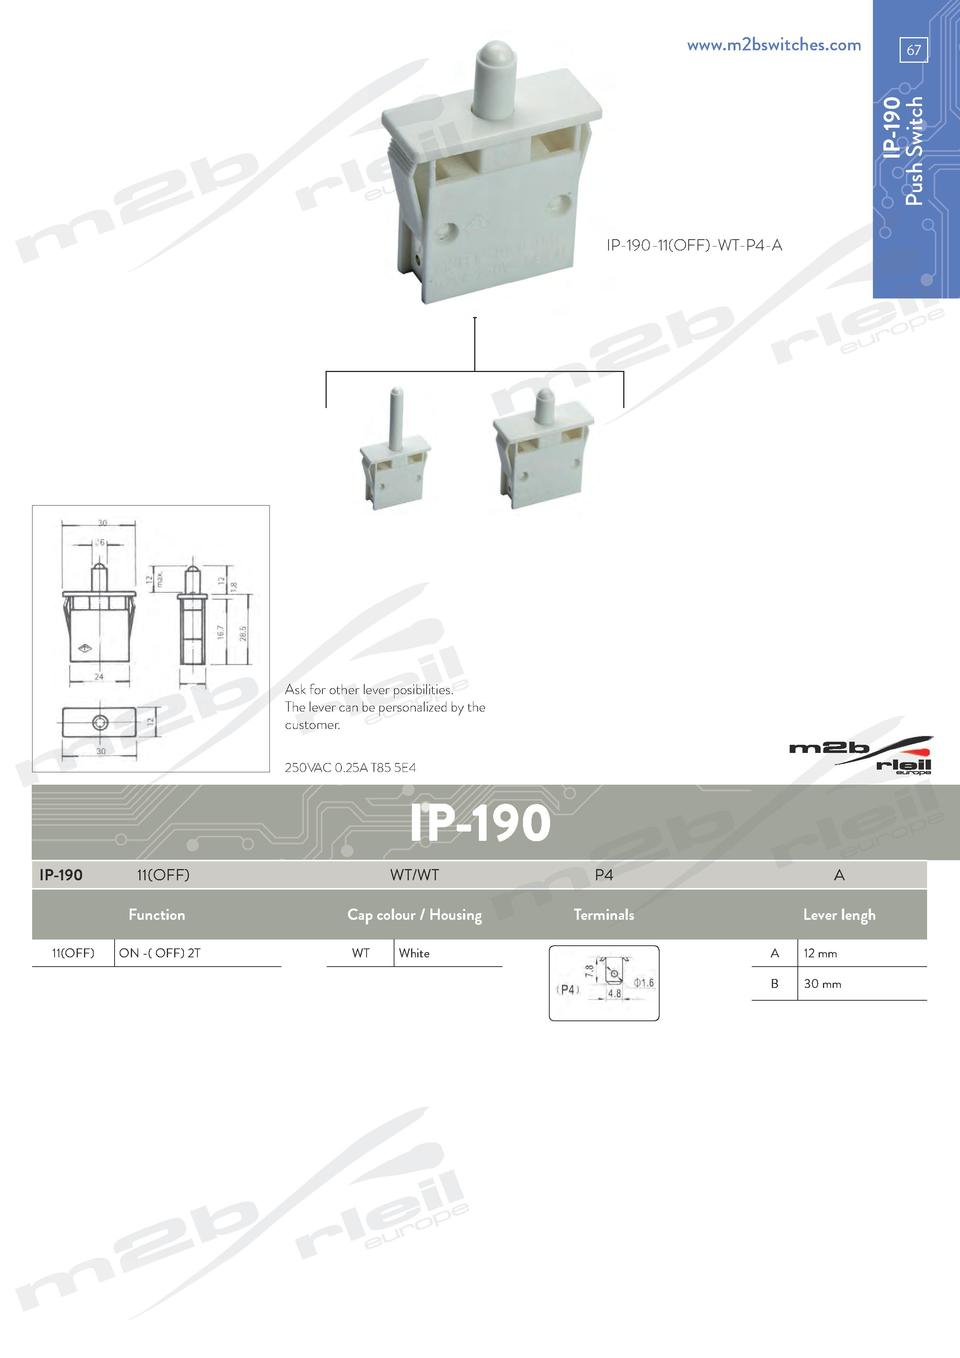 www.m2bswitches.com  IP-190 Push Switch  67  IP-190-11 OFF -WT-P4-A  Ask for other lever posibilities. The lever can be pe...